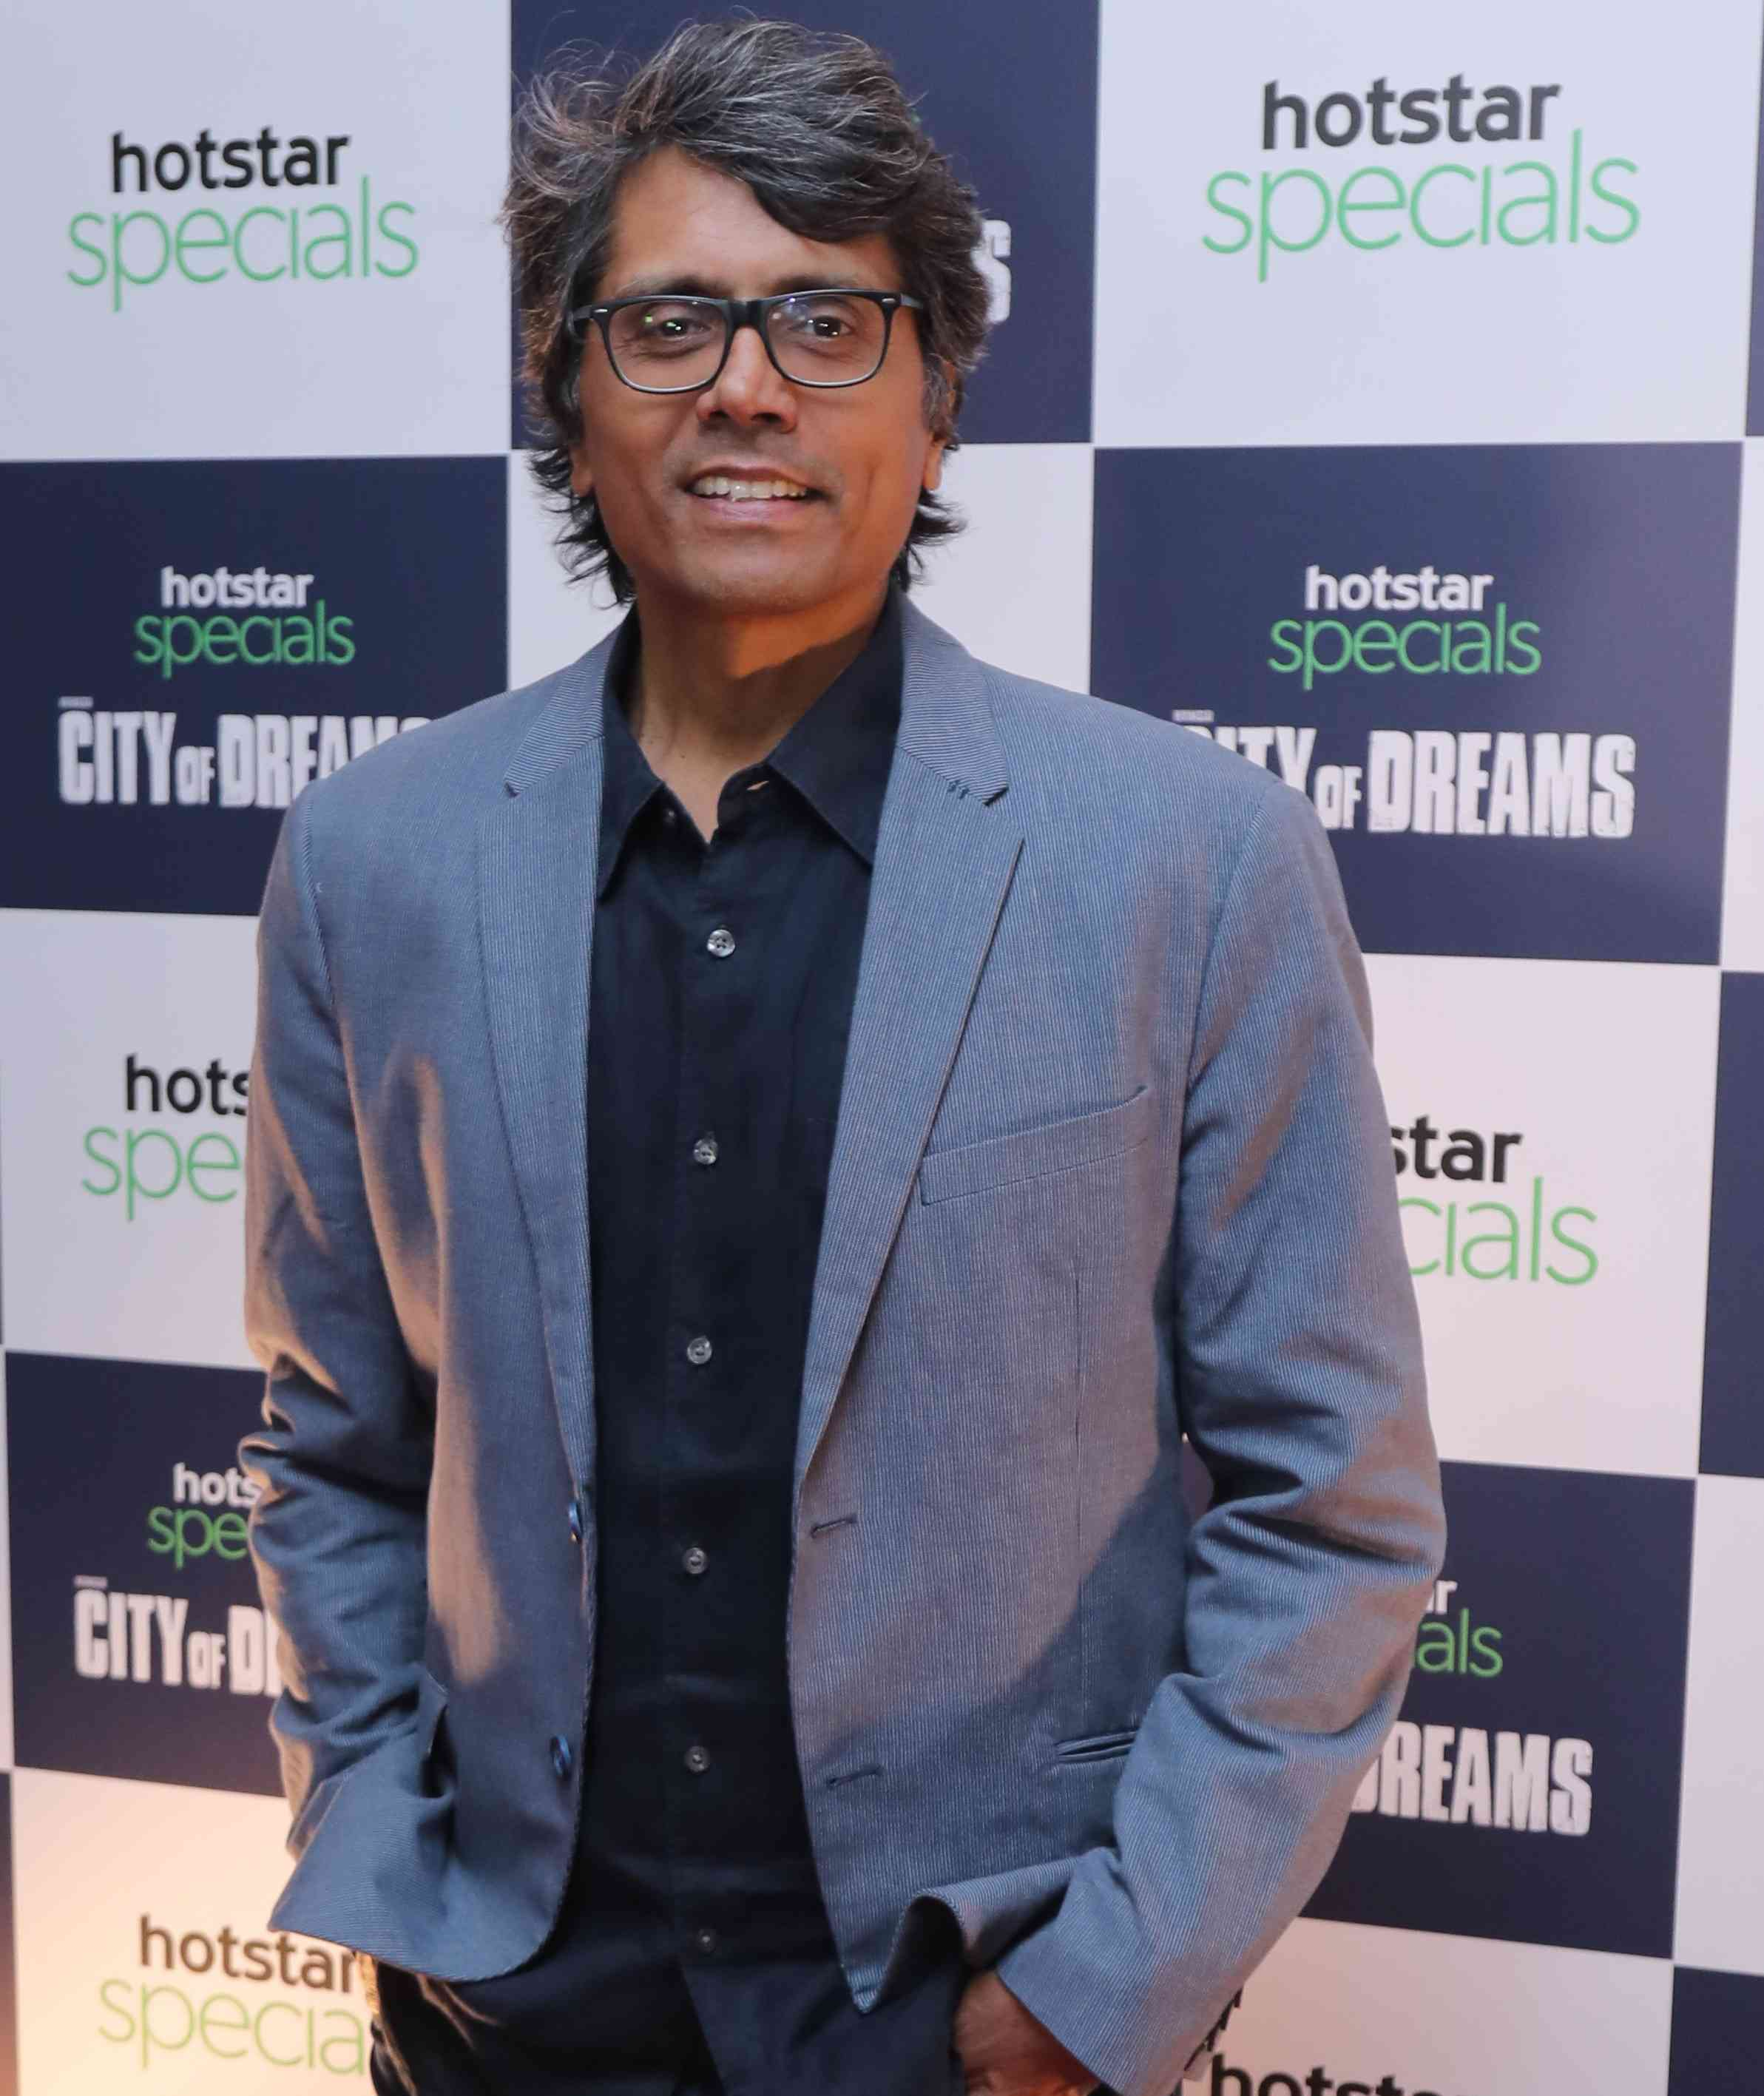 Nagesh Kukunoor interview: City of Dreams director speaks about the